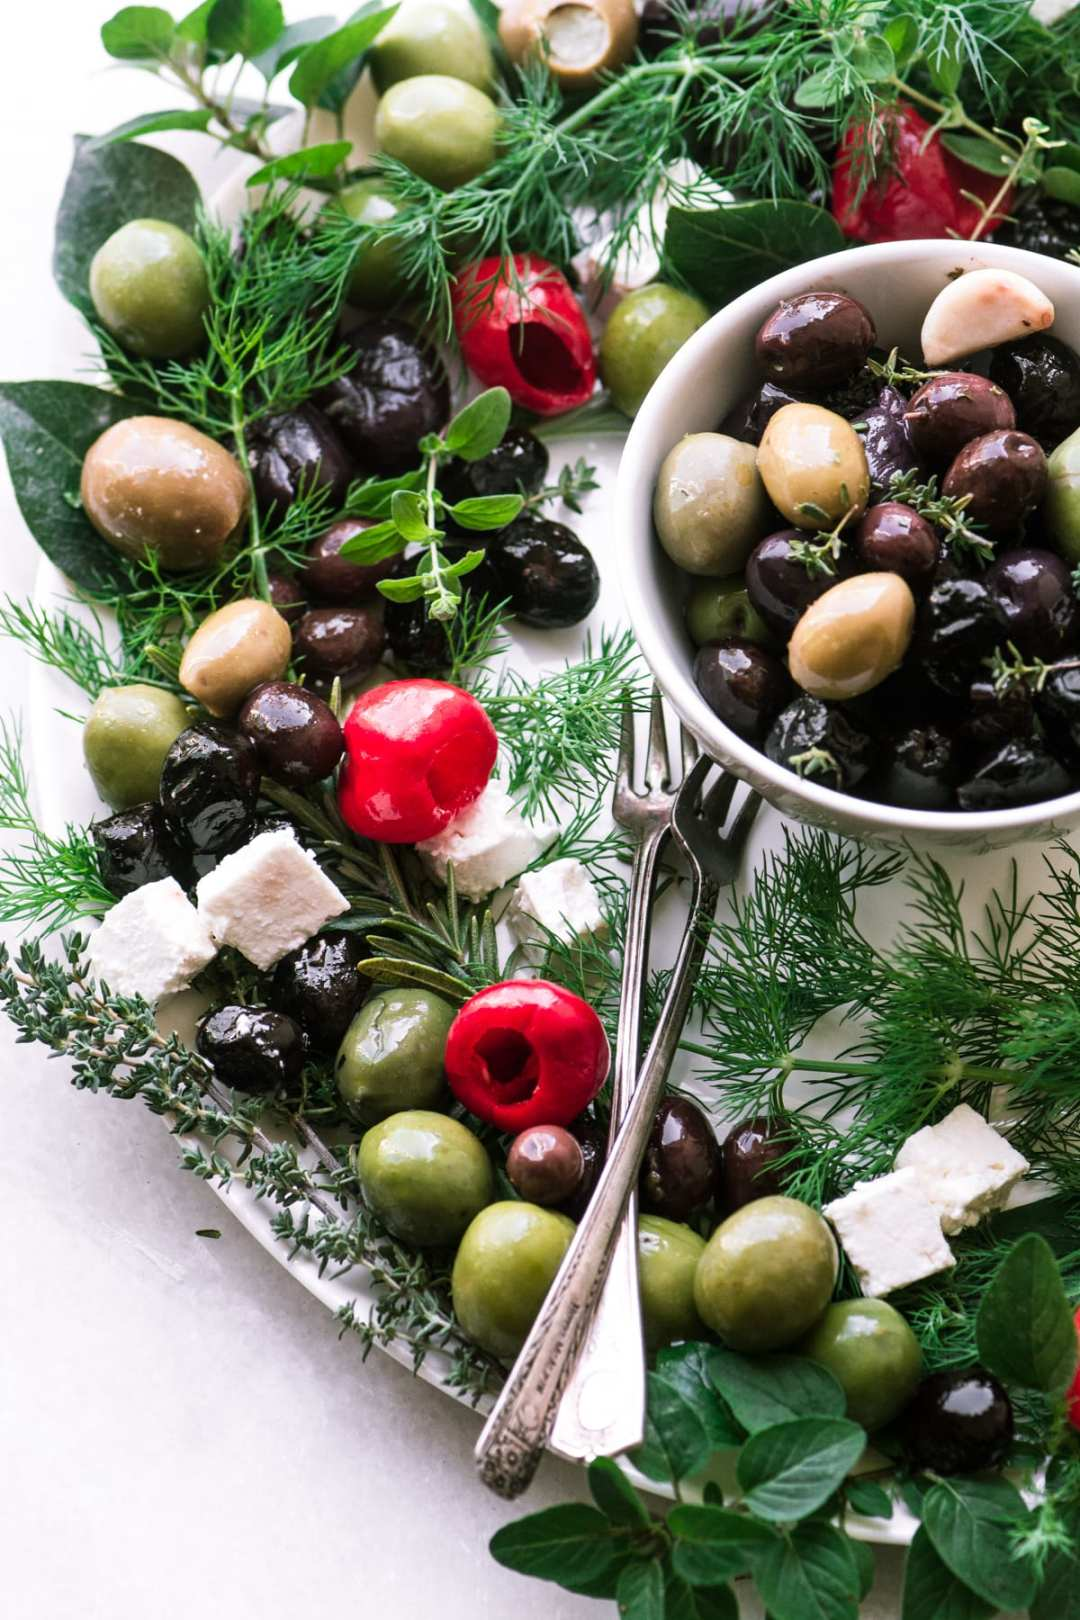 Festive Olive Herb Wreath appetizer on a marble counter